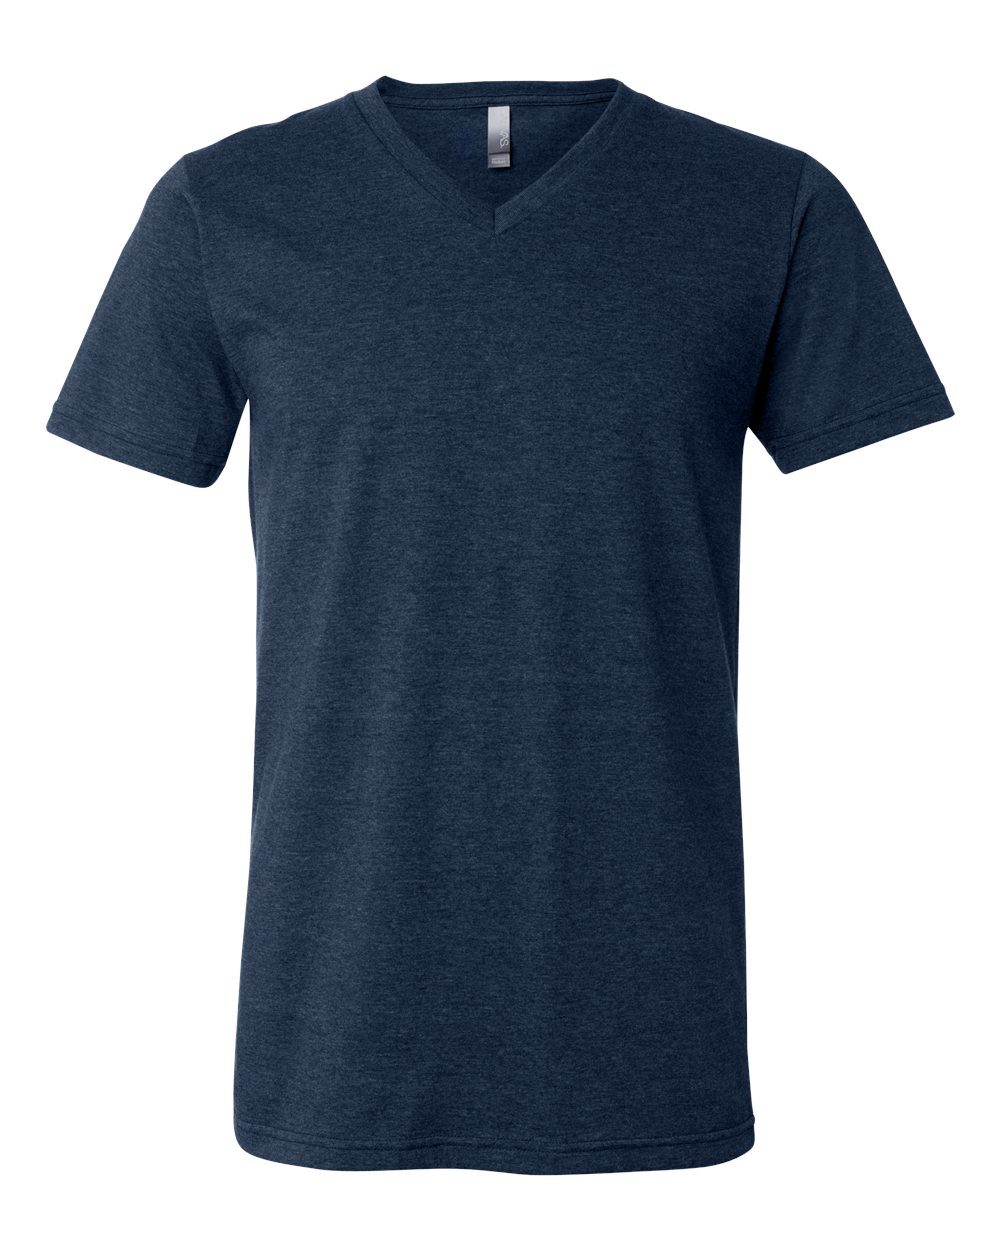 click to view Heather Navy(52/48)